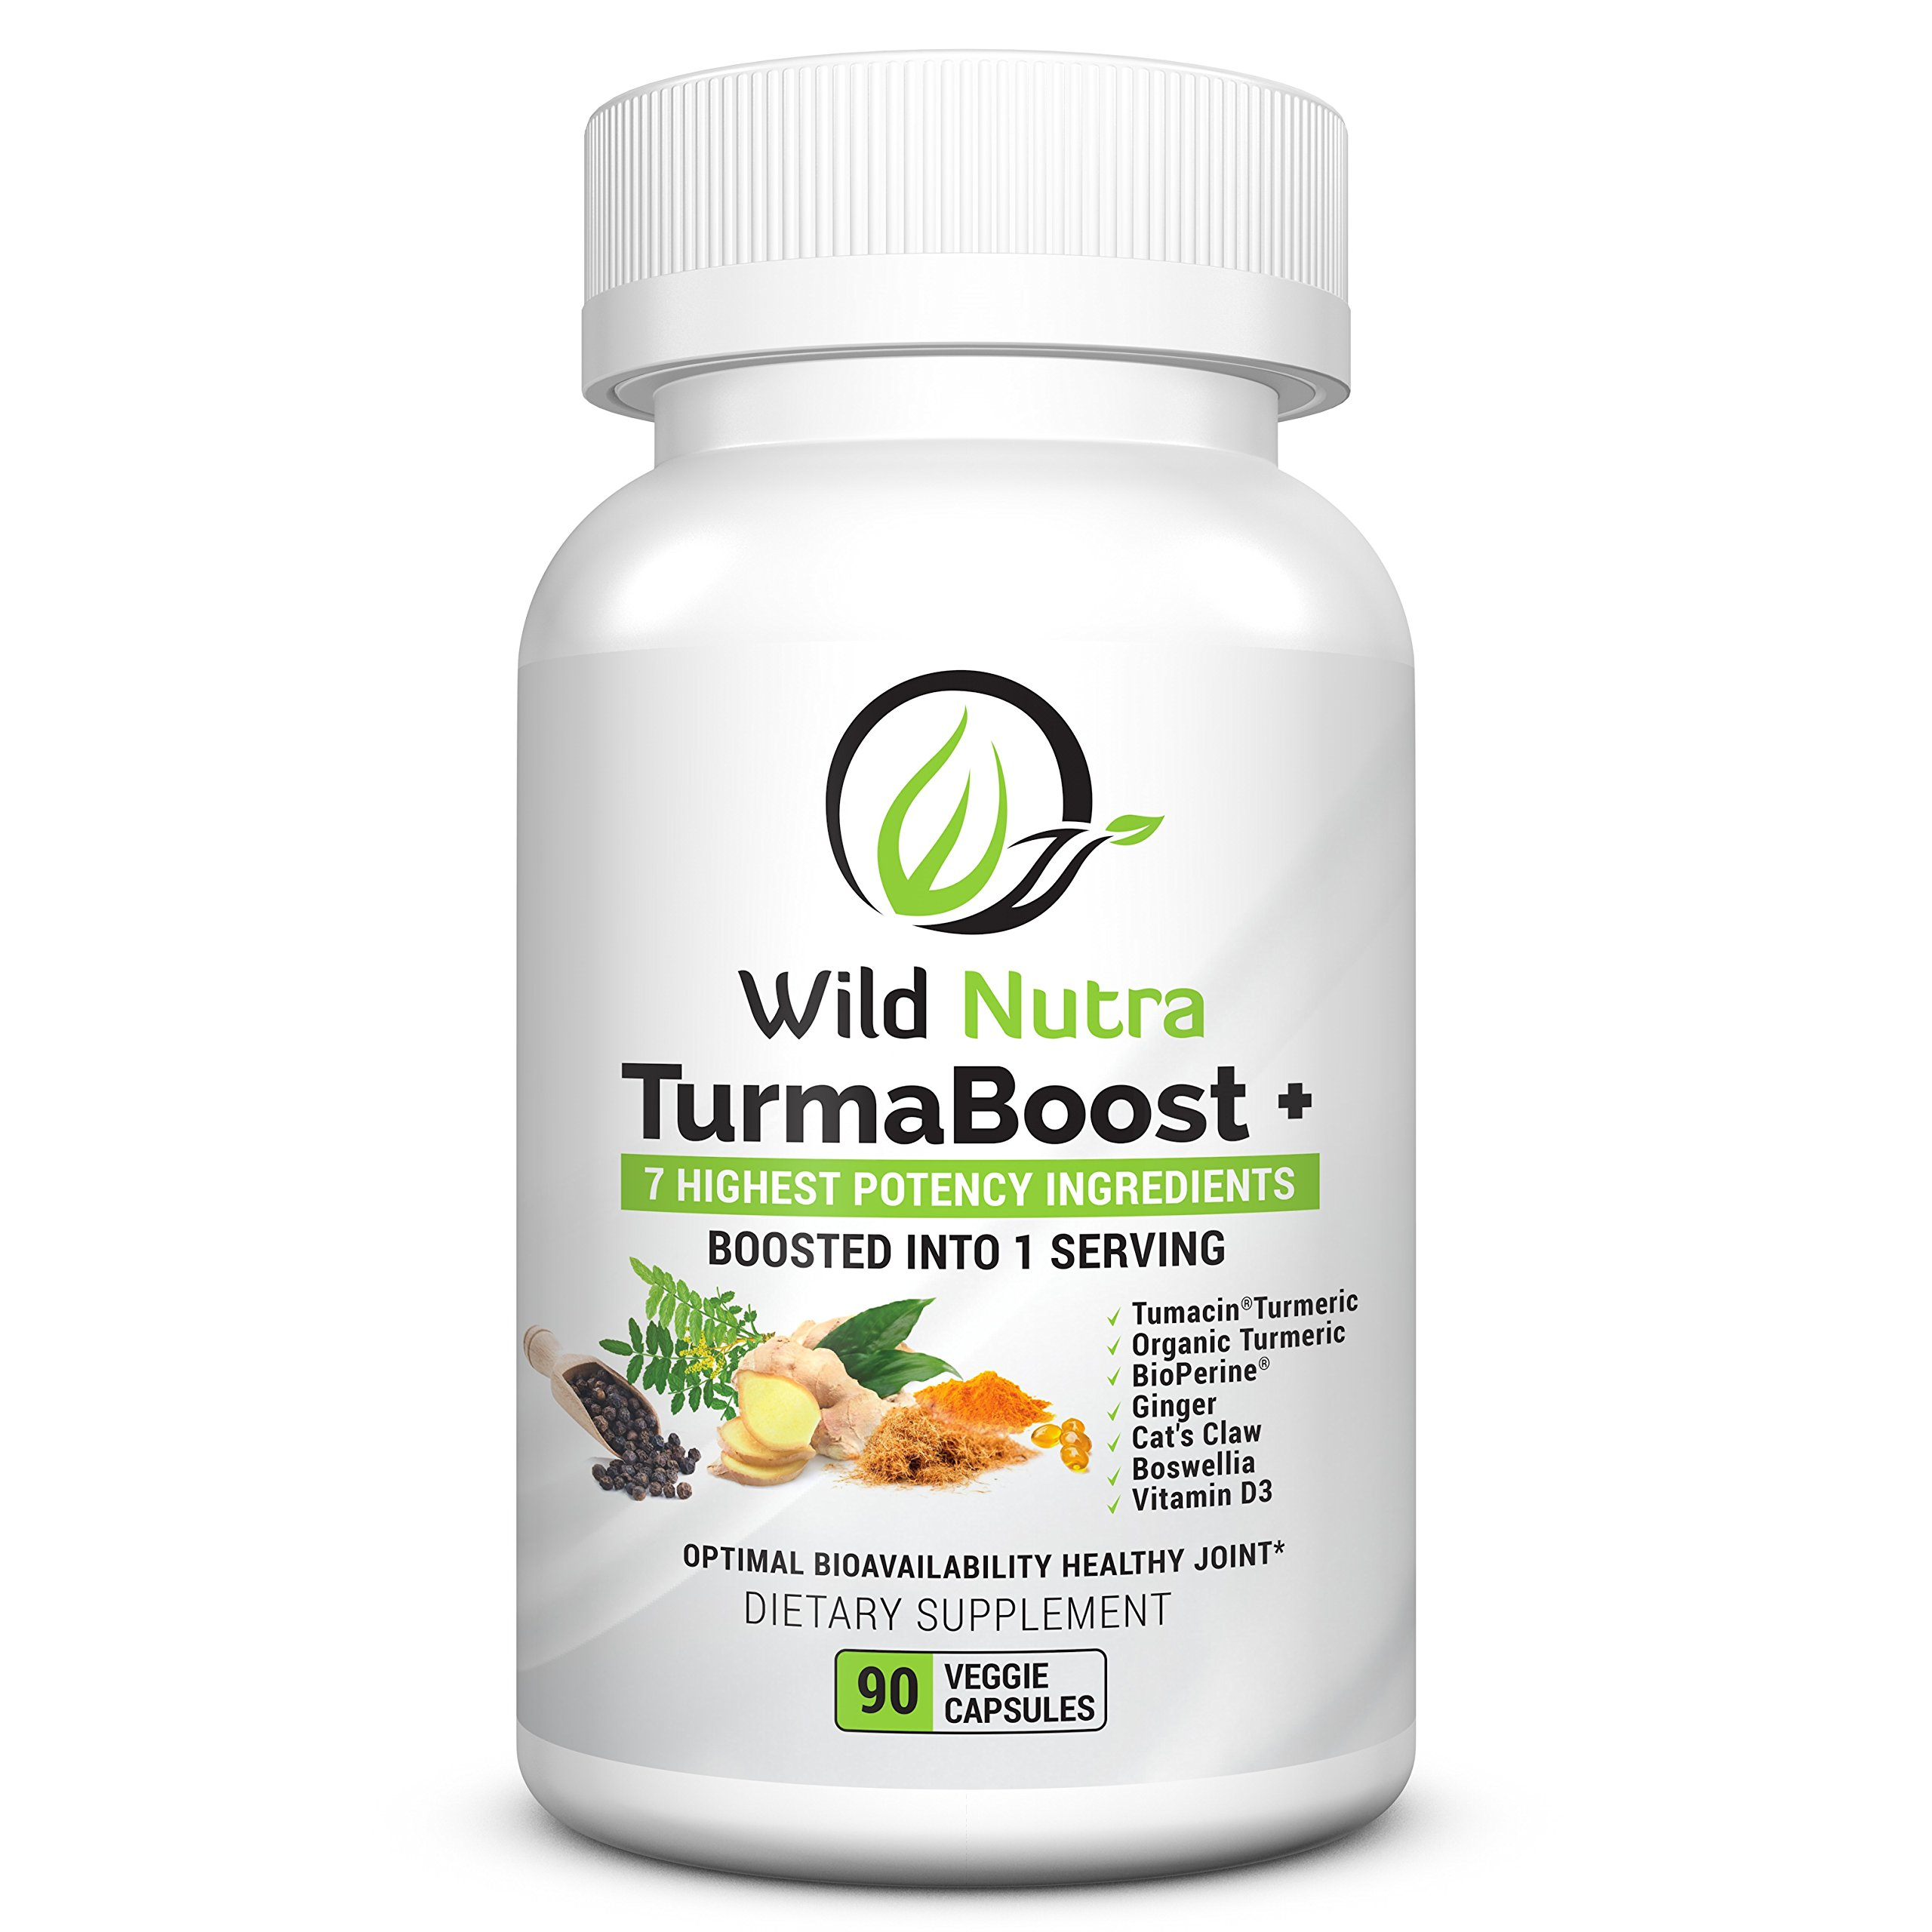 Turmacin® Tumeric Curcumin Supplement with 6 Extra boosters – Cats Claw, Ginger, Boswellia, Organic Turmeric, Black Pepper & Vitamin D. Guaranteed to Help Ease Joint Pain, Hip, Knee and Back Pain.